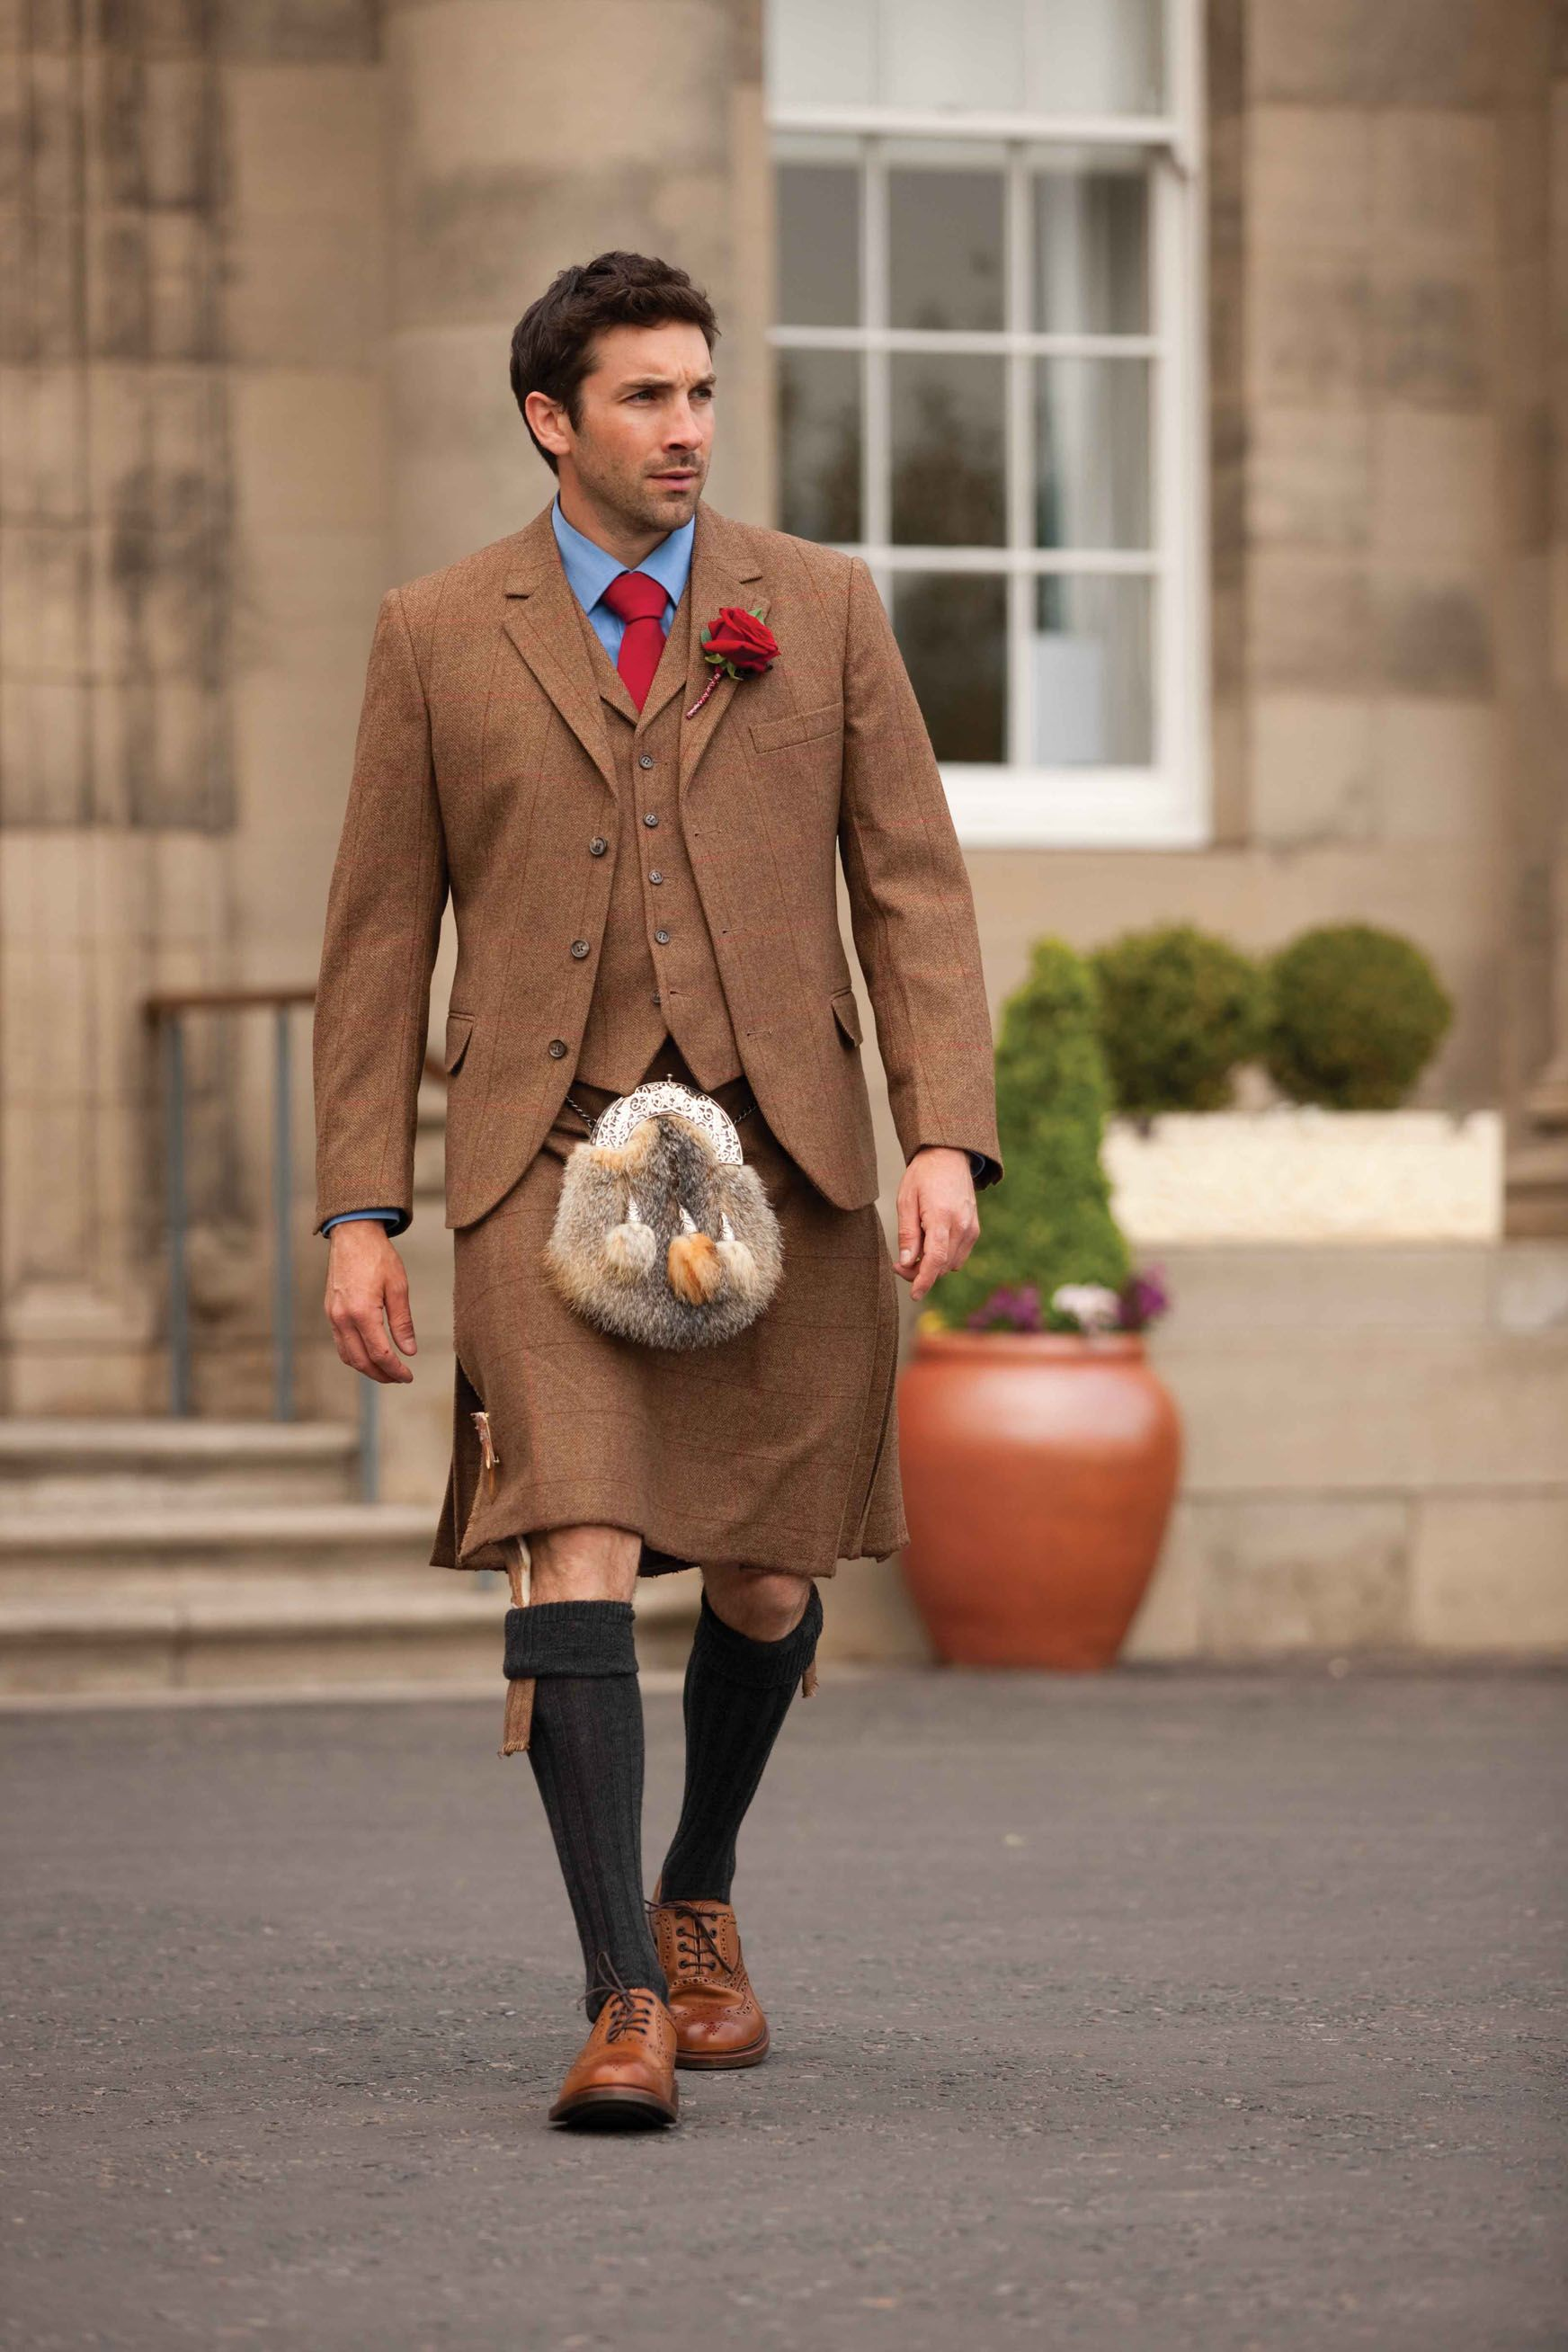 What Shoes Do You Wear With A Kilt